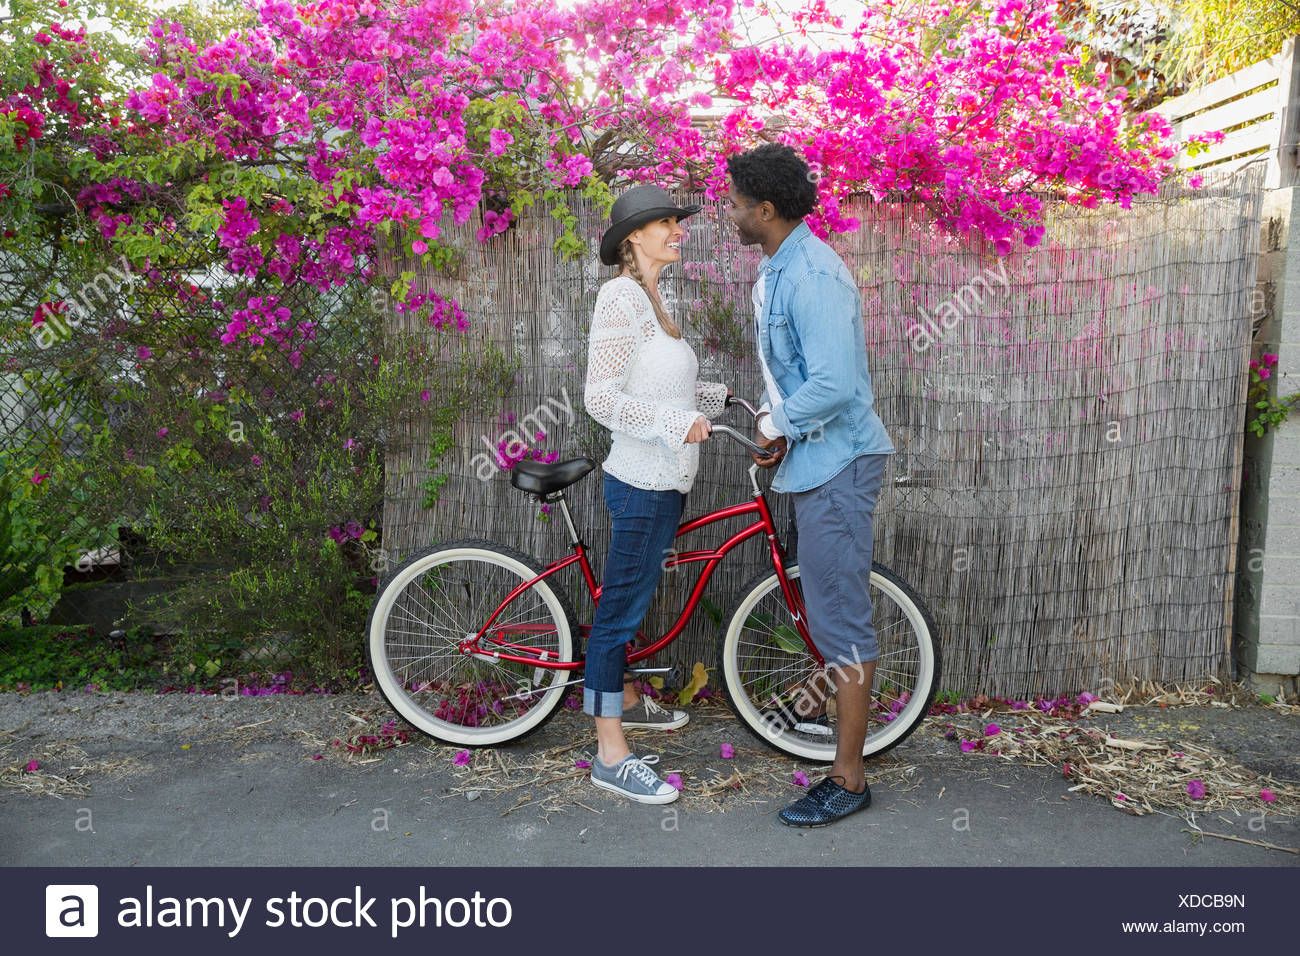 Affectionate couple with bicycle below bougainvillea tree - Stock Image